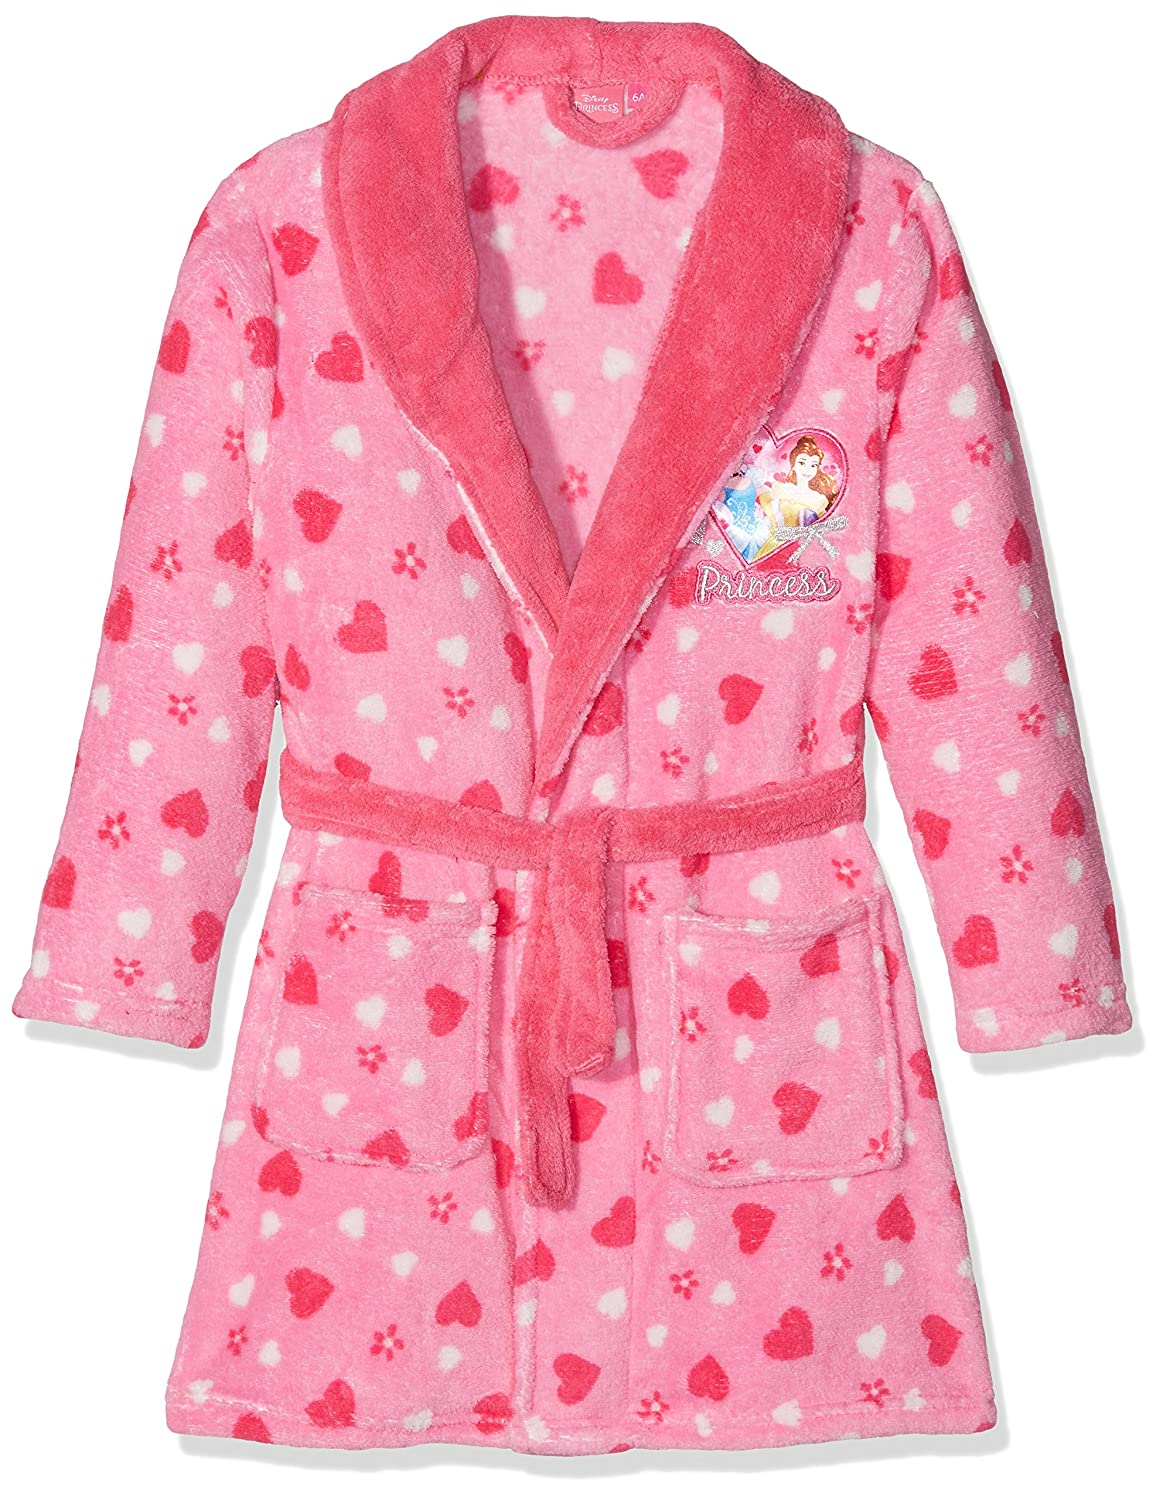 Sun City FR Girl's Princess Small Hearts Kimono DHQ2160